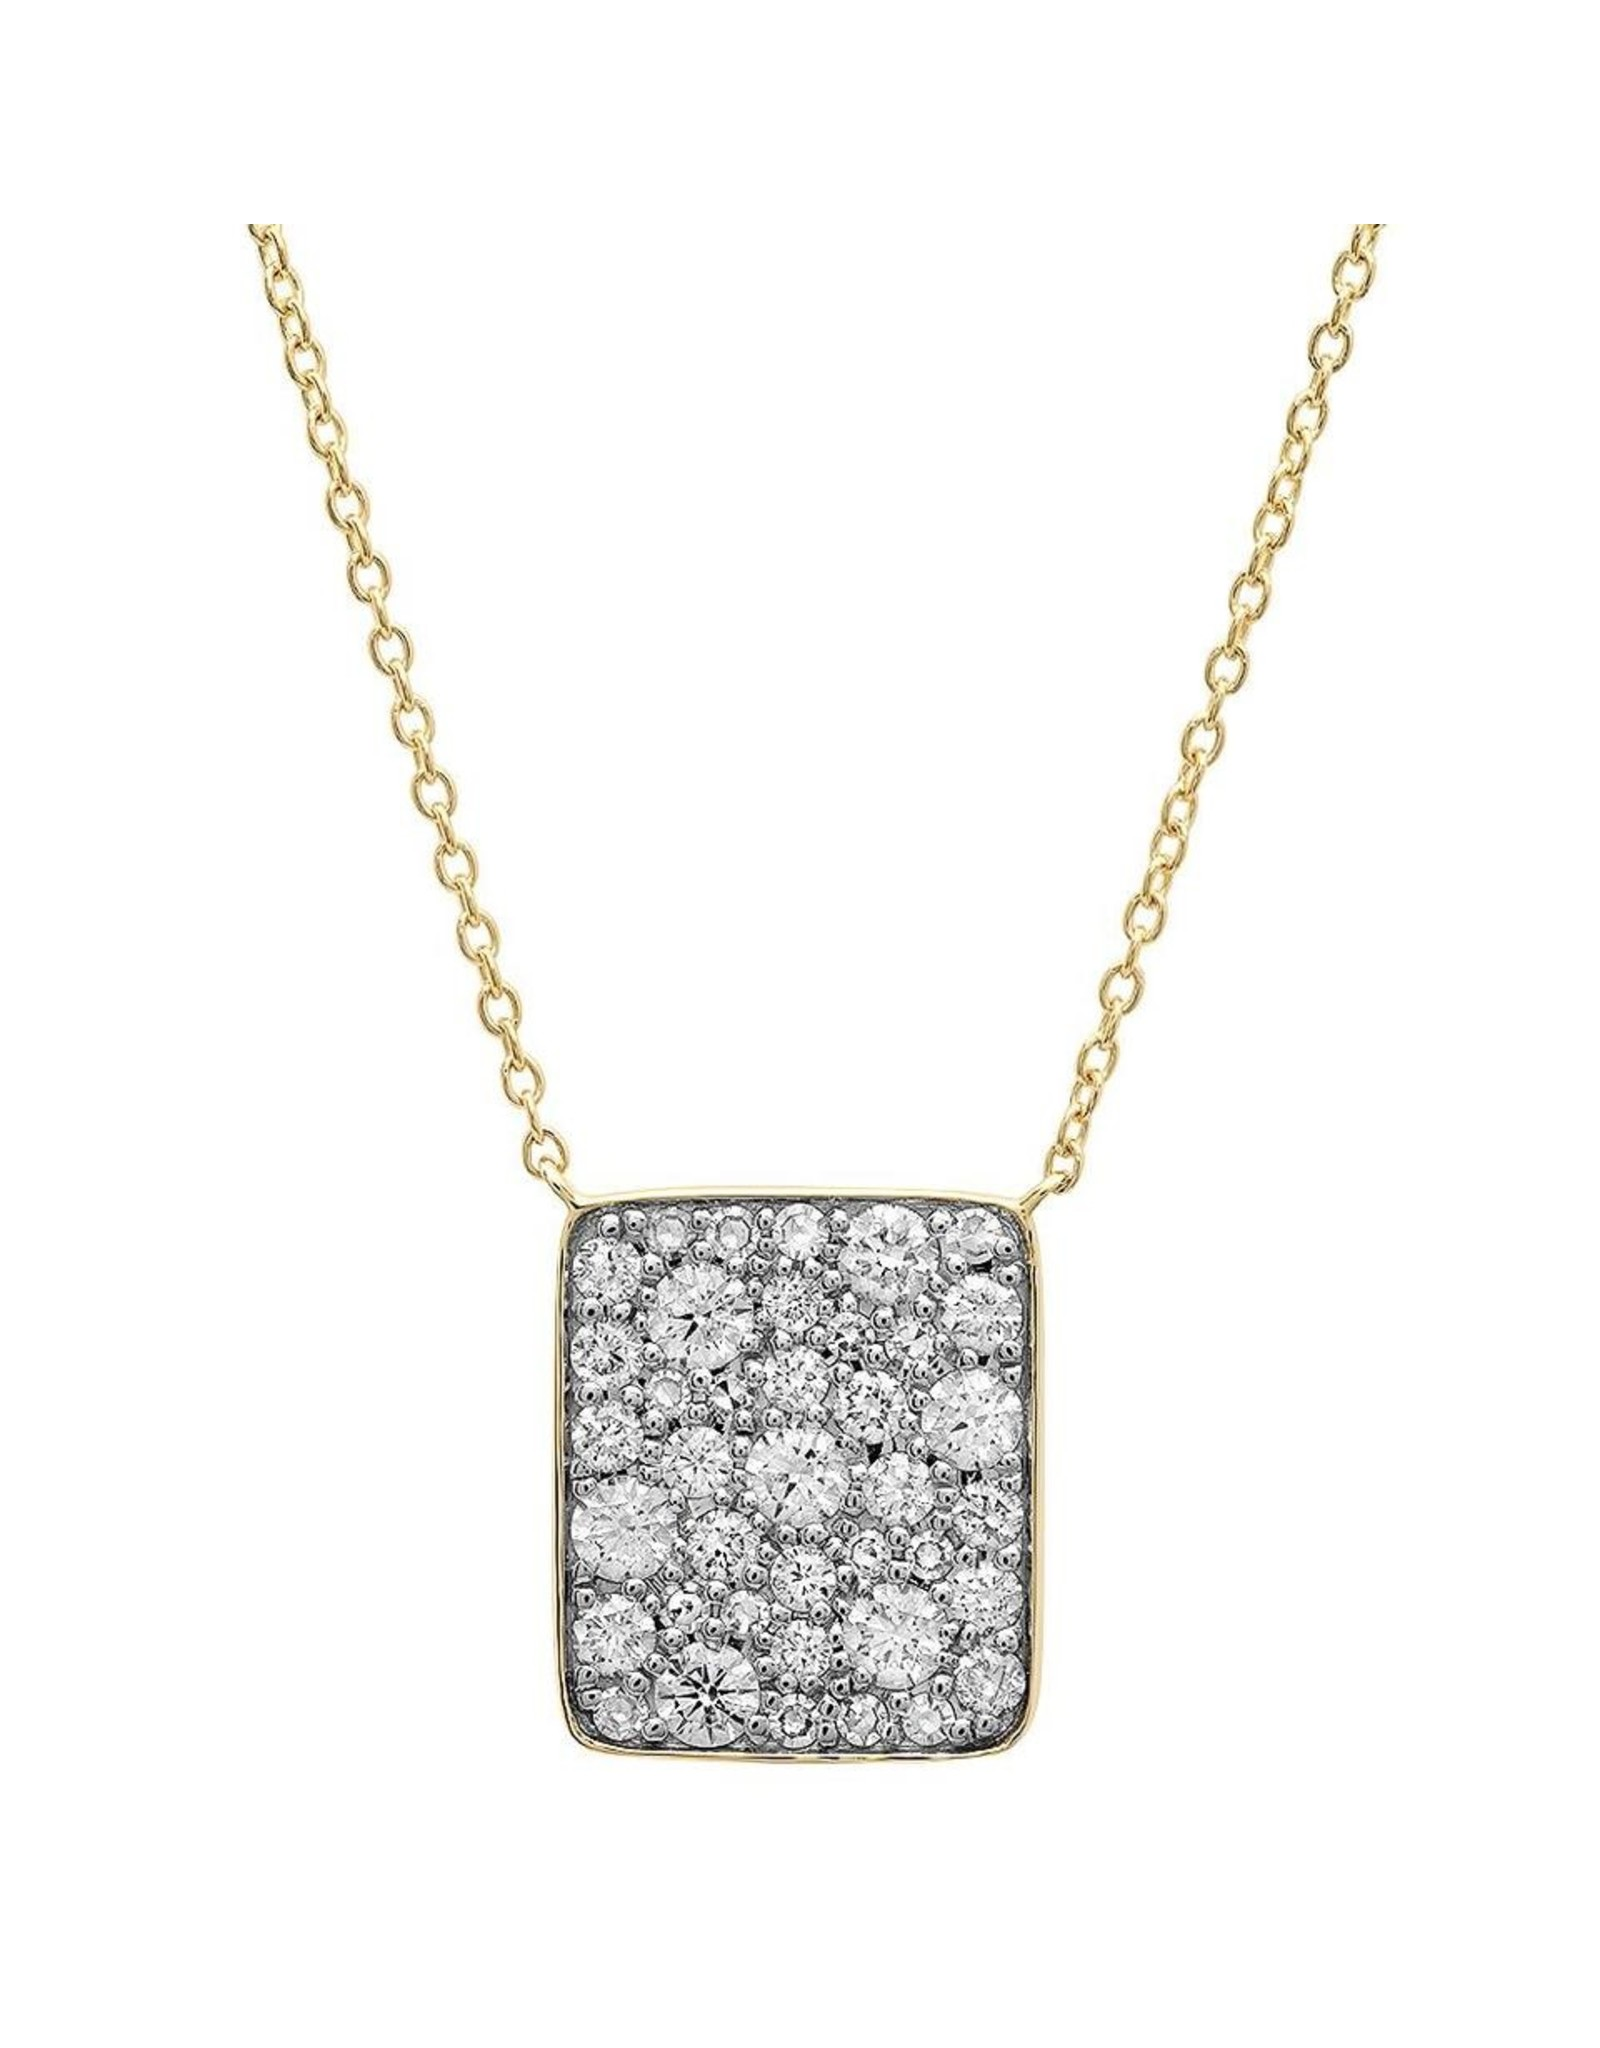 Eriness Eriness 14K Yellow Gold Diamond Cluster Necklace (Color: Yellow Gold / White Diamonds)